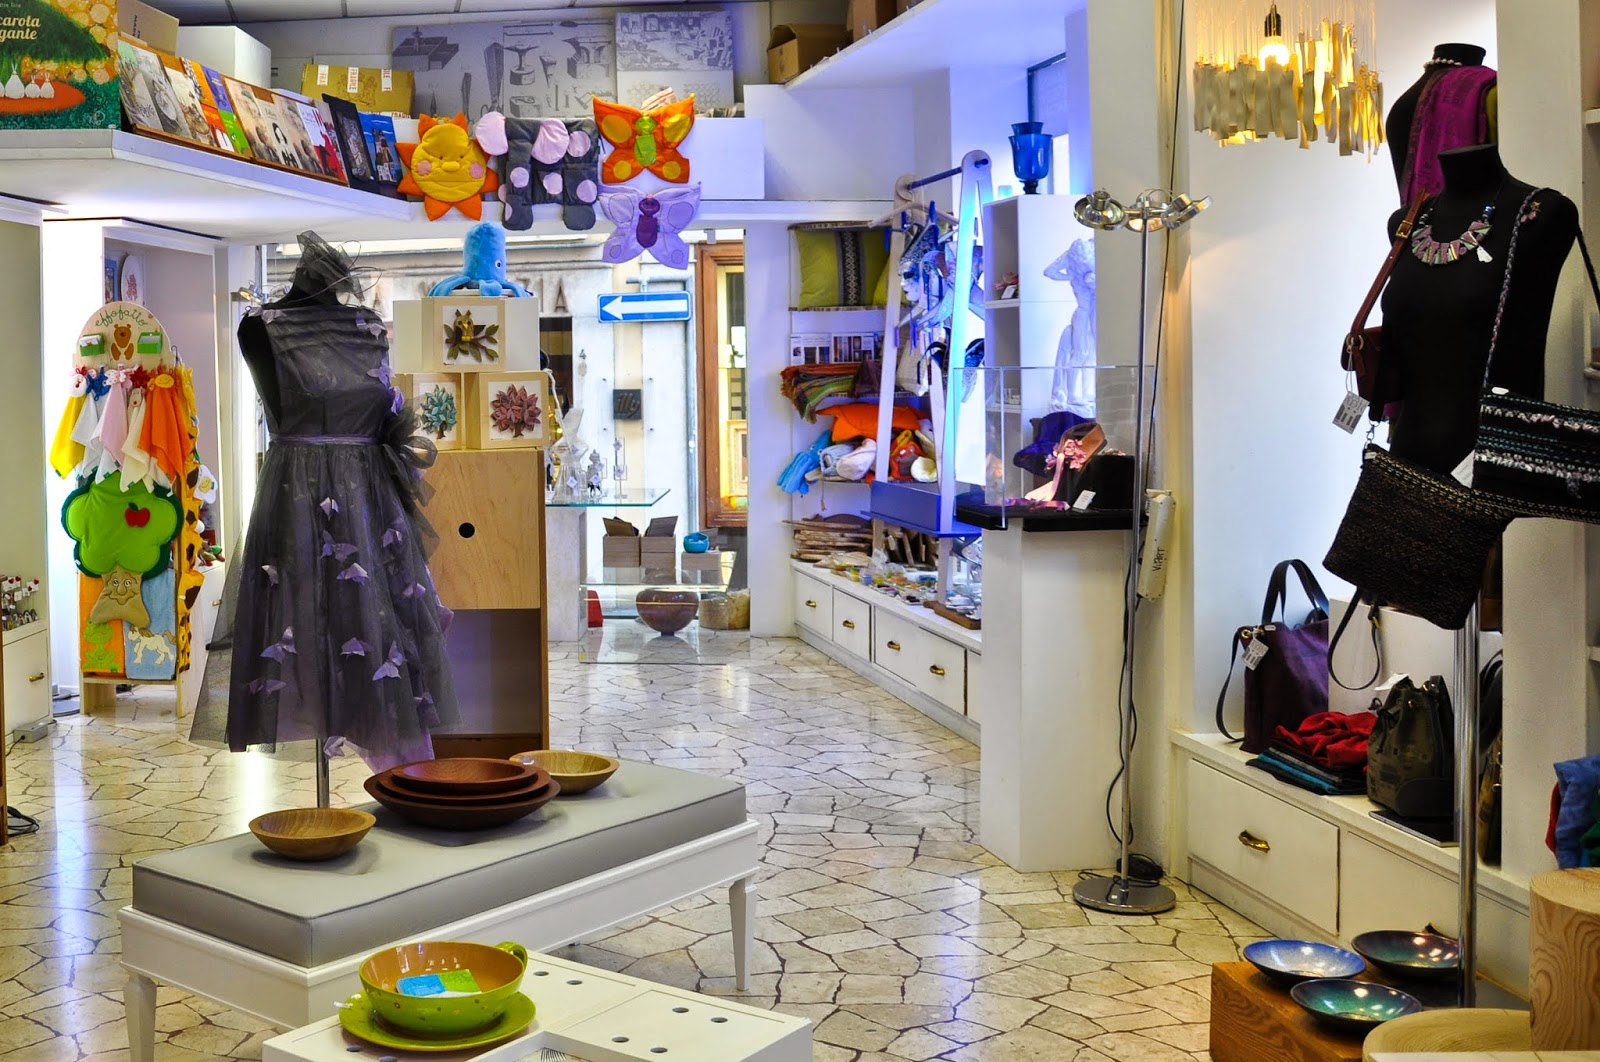 The ViArt shop in Vicenza houses a selection of handiworks by local artists